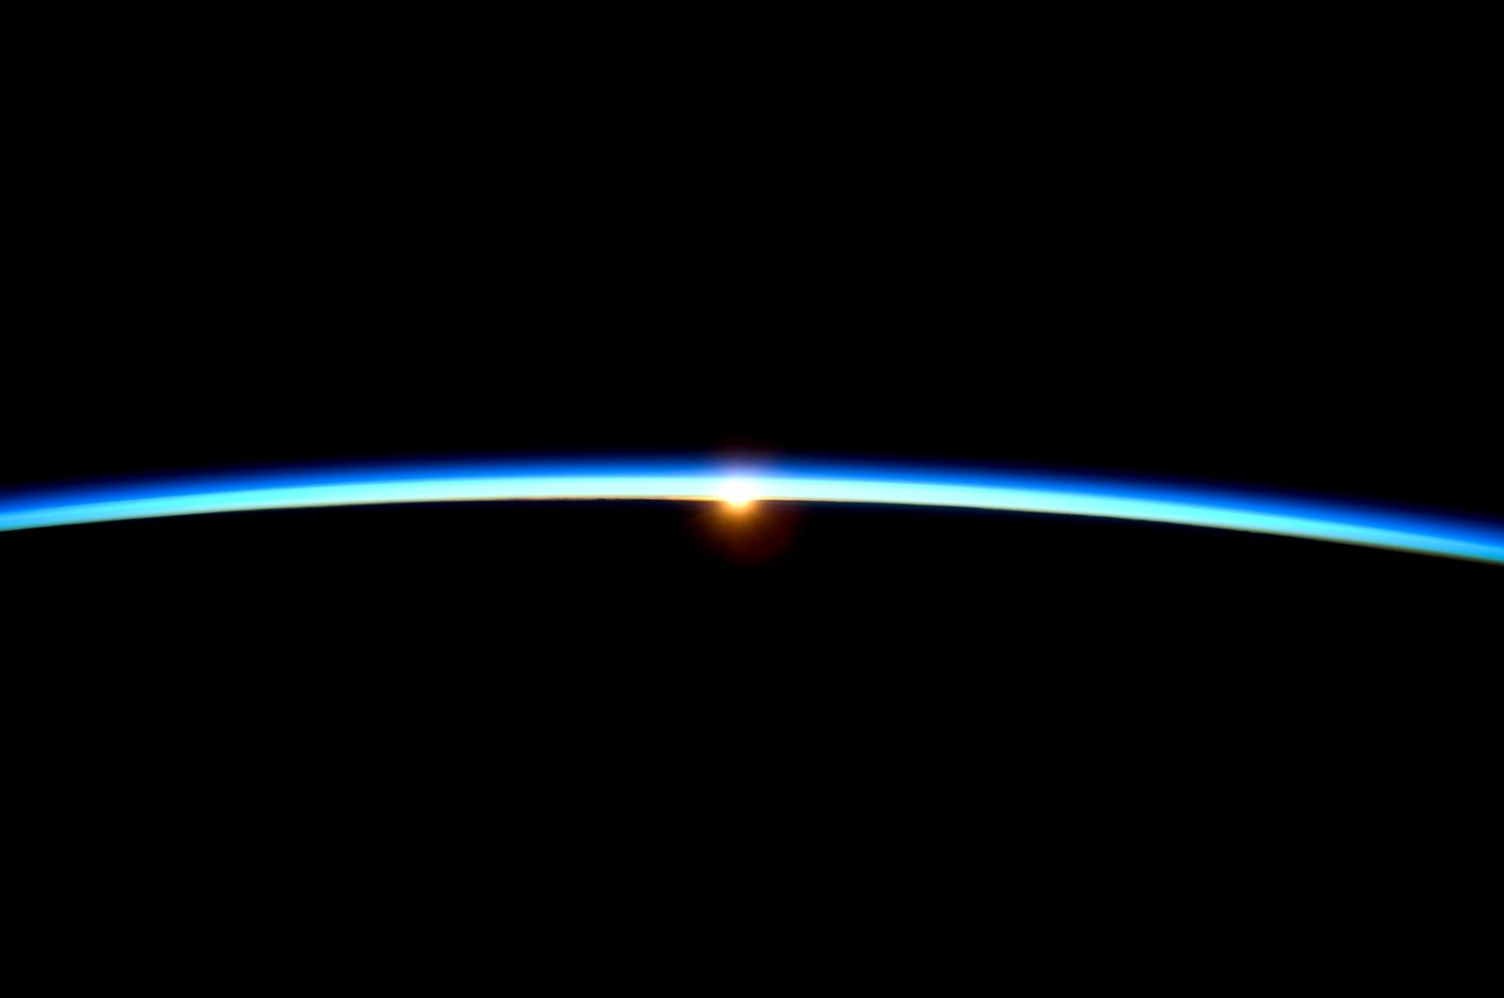 Space Sunset Nasa Wallpapers Hd Elegant Wallpapers